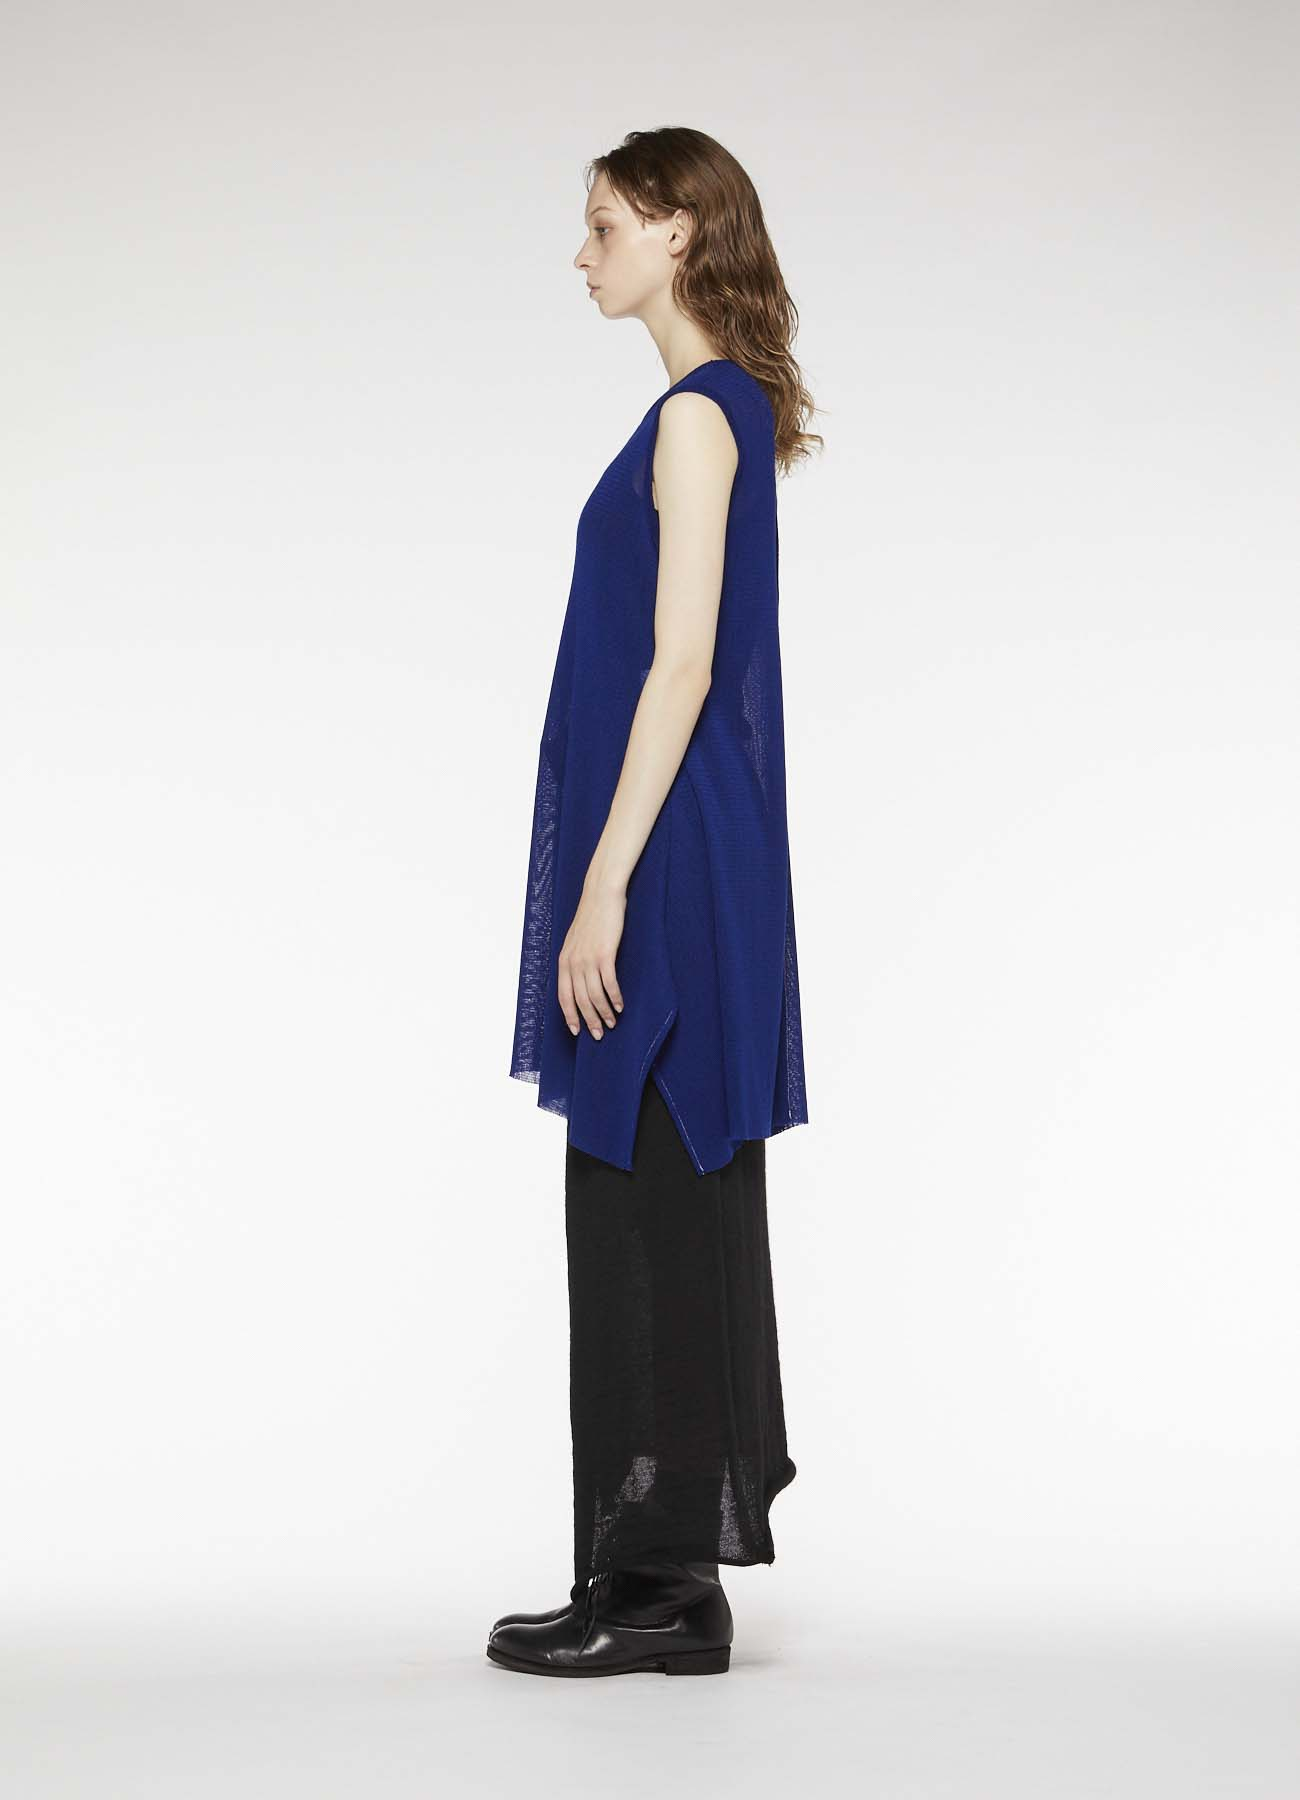 ACRYL WOOL TULLE BOTTOM DRAPE DRESS